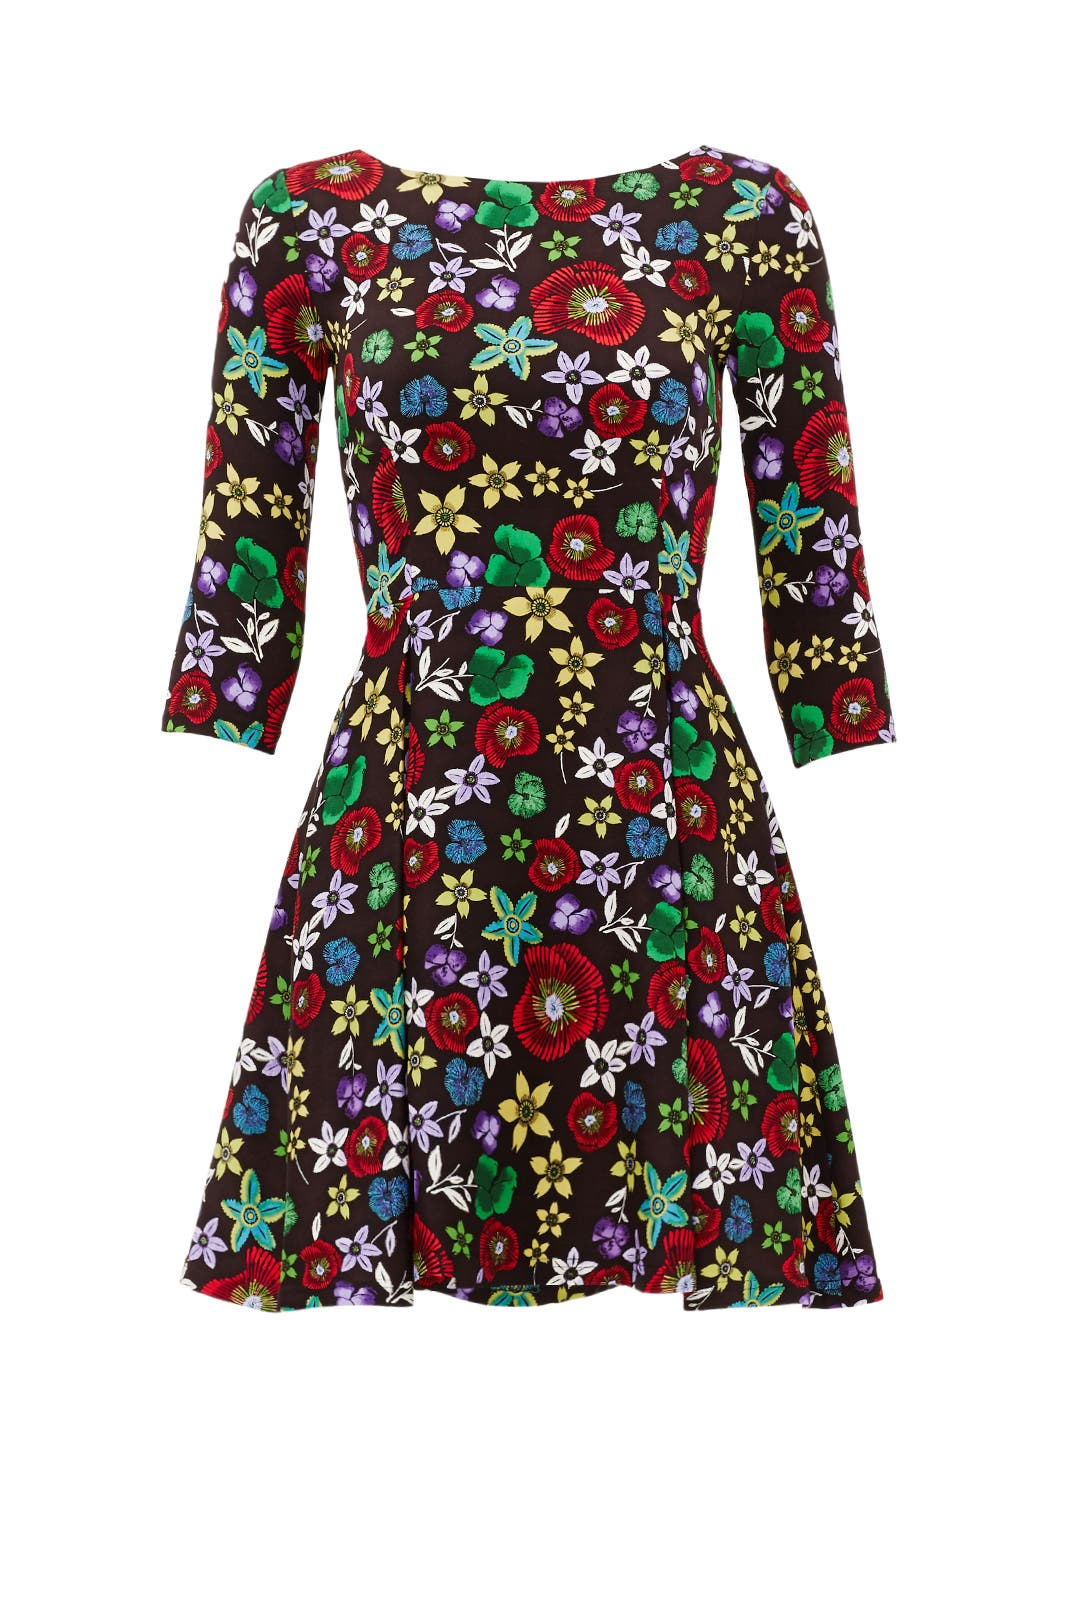 Black Floral Dress by Suno for $90  Rent the Runway